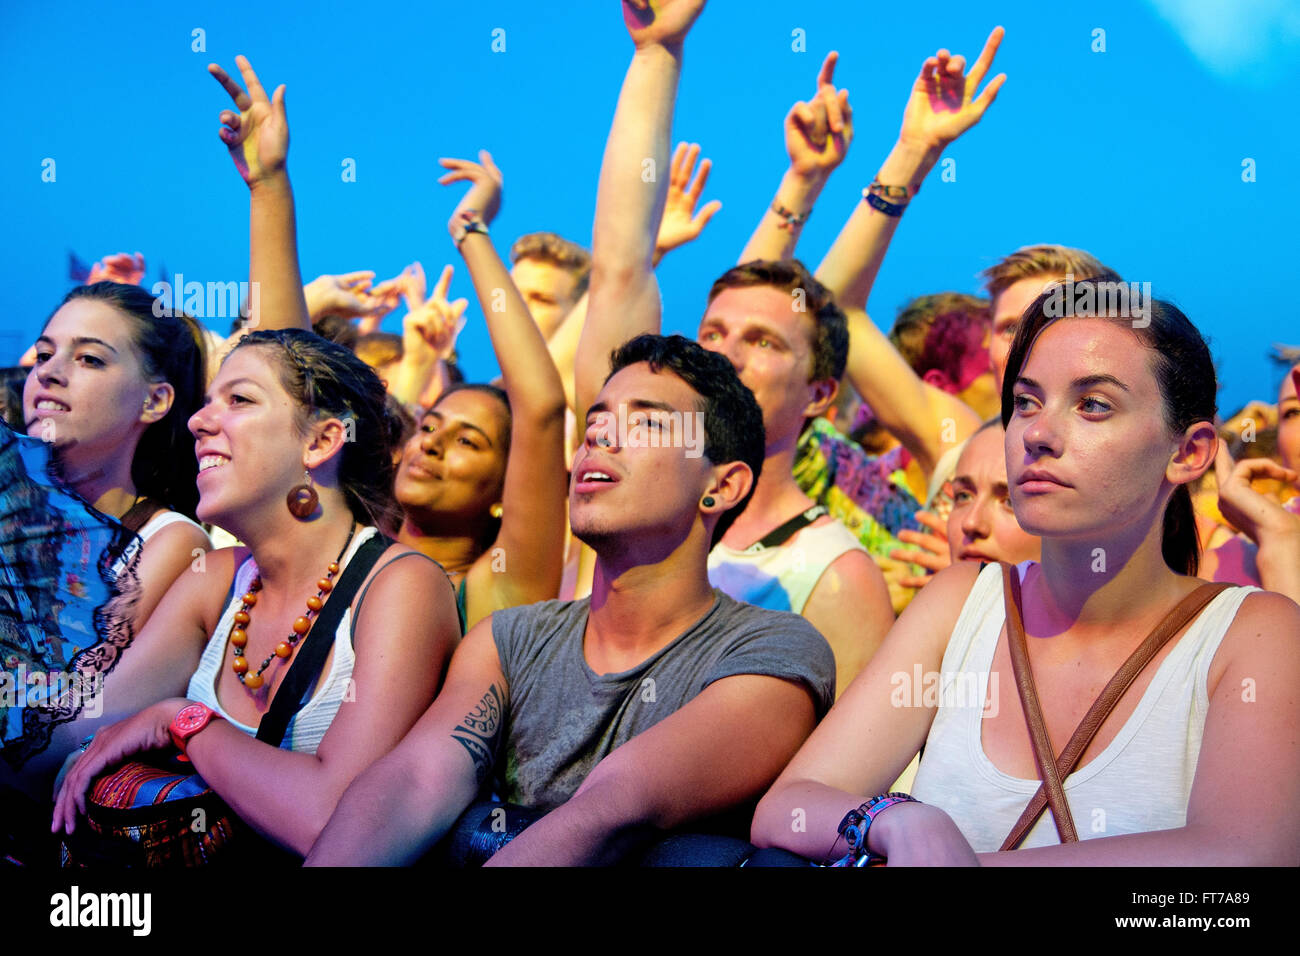 BENICASSIM, SPAIN - JULY 19: Crowd (fans) at FIB (Festival Internacional de Benicassim) 2013 Festival. - Stock Image